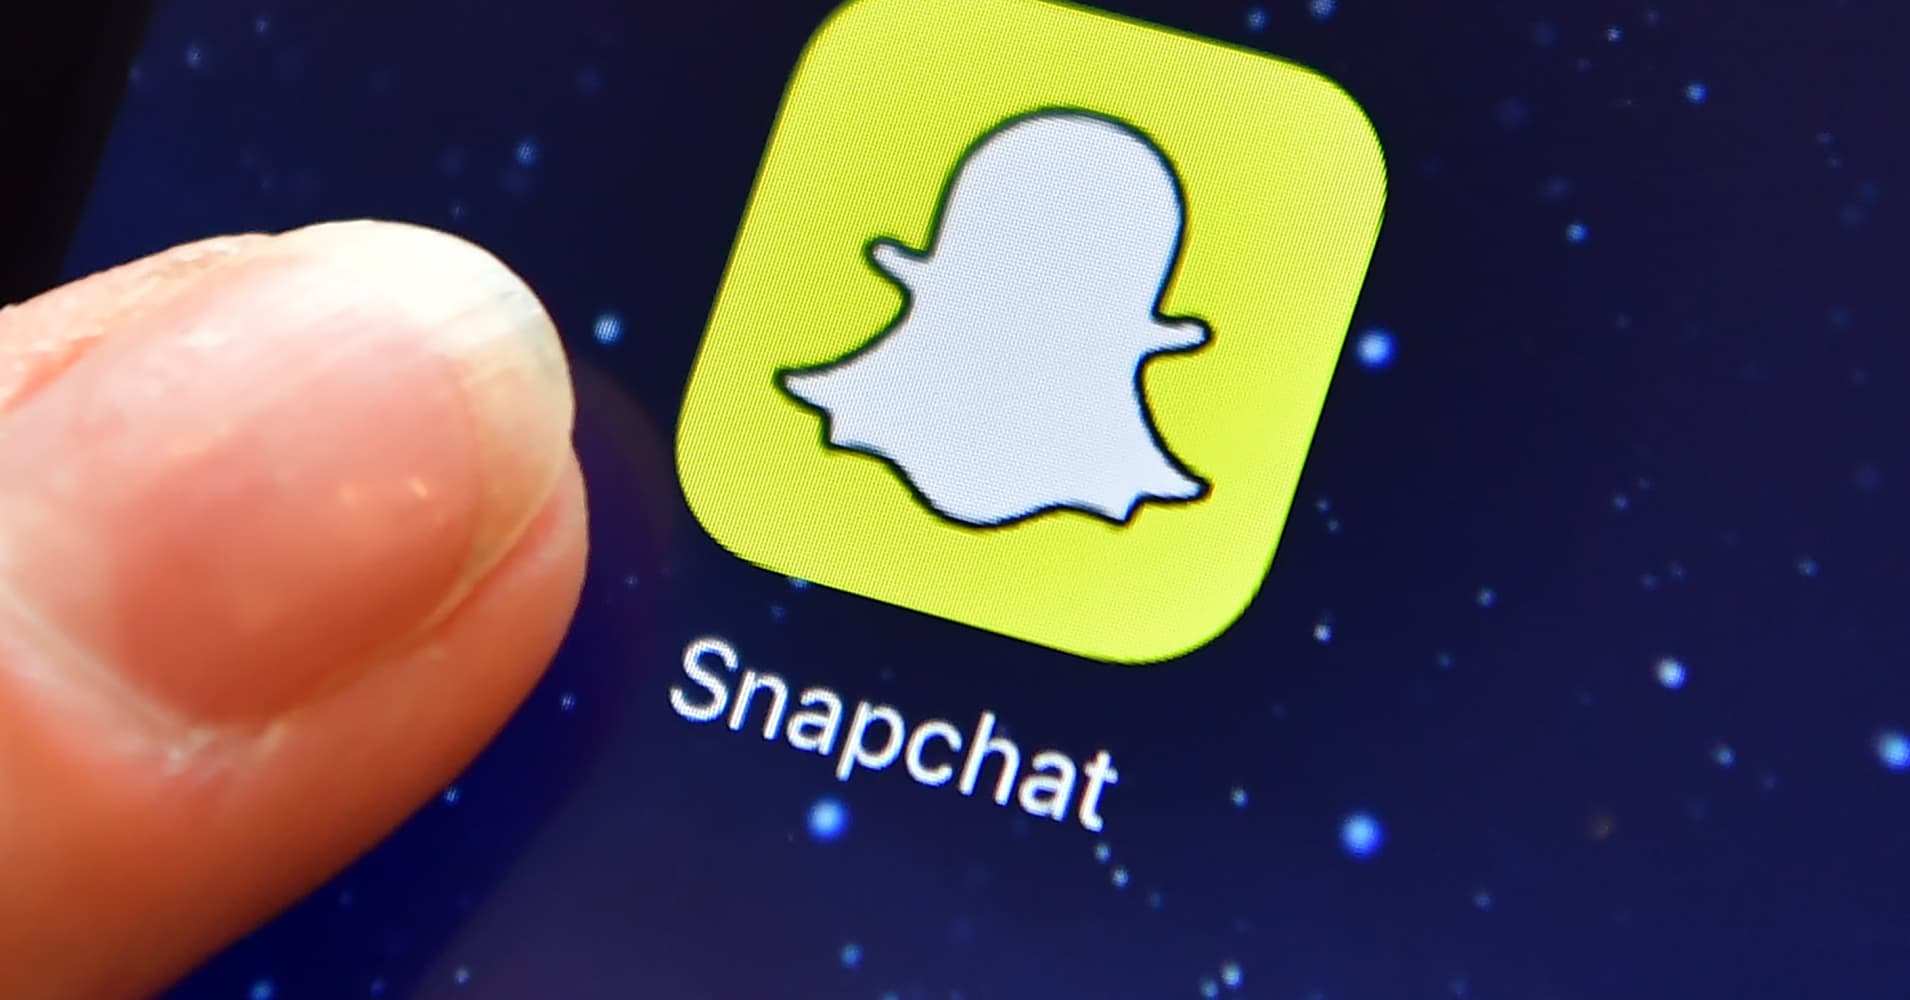 Snap chat ipo cash out